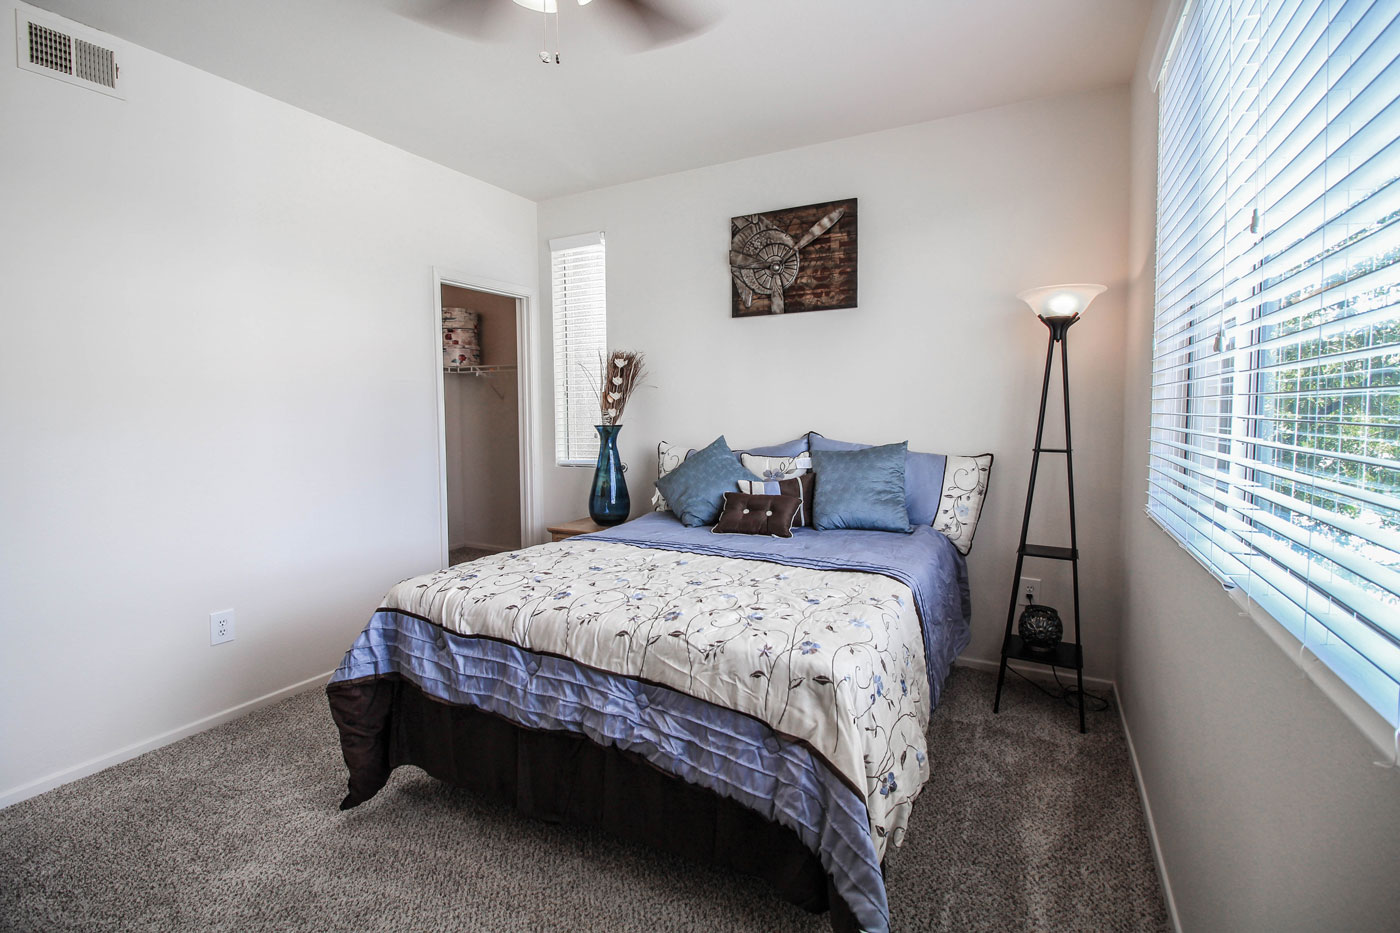 Bedroom with queen bed and blue decor.